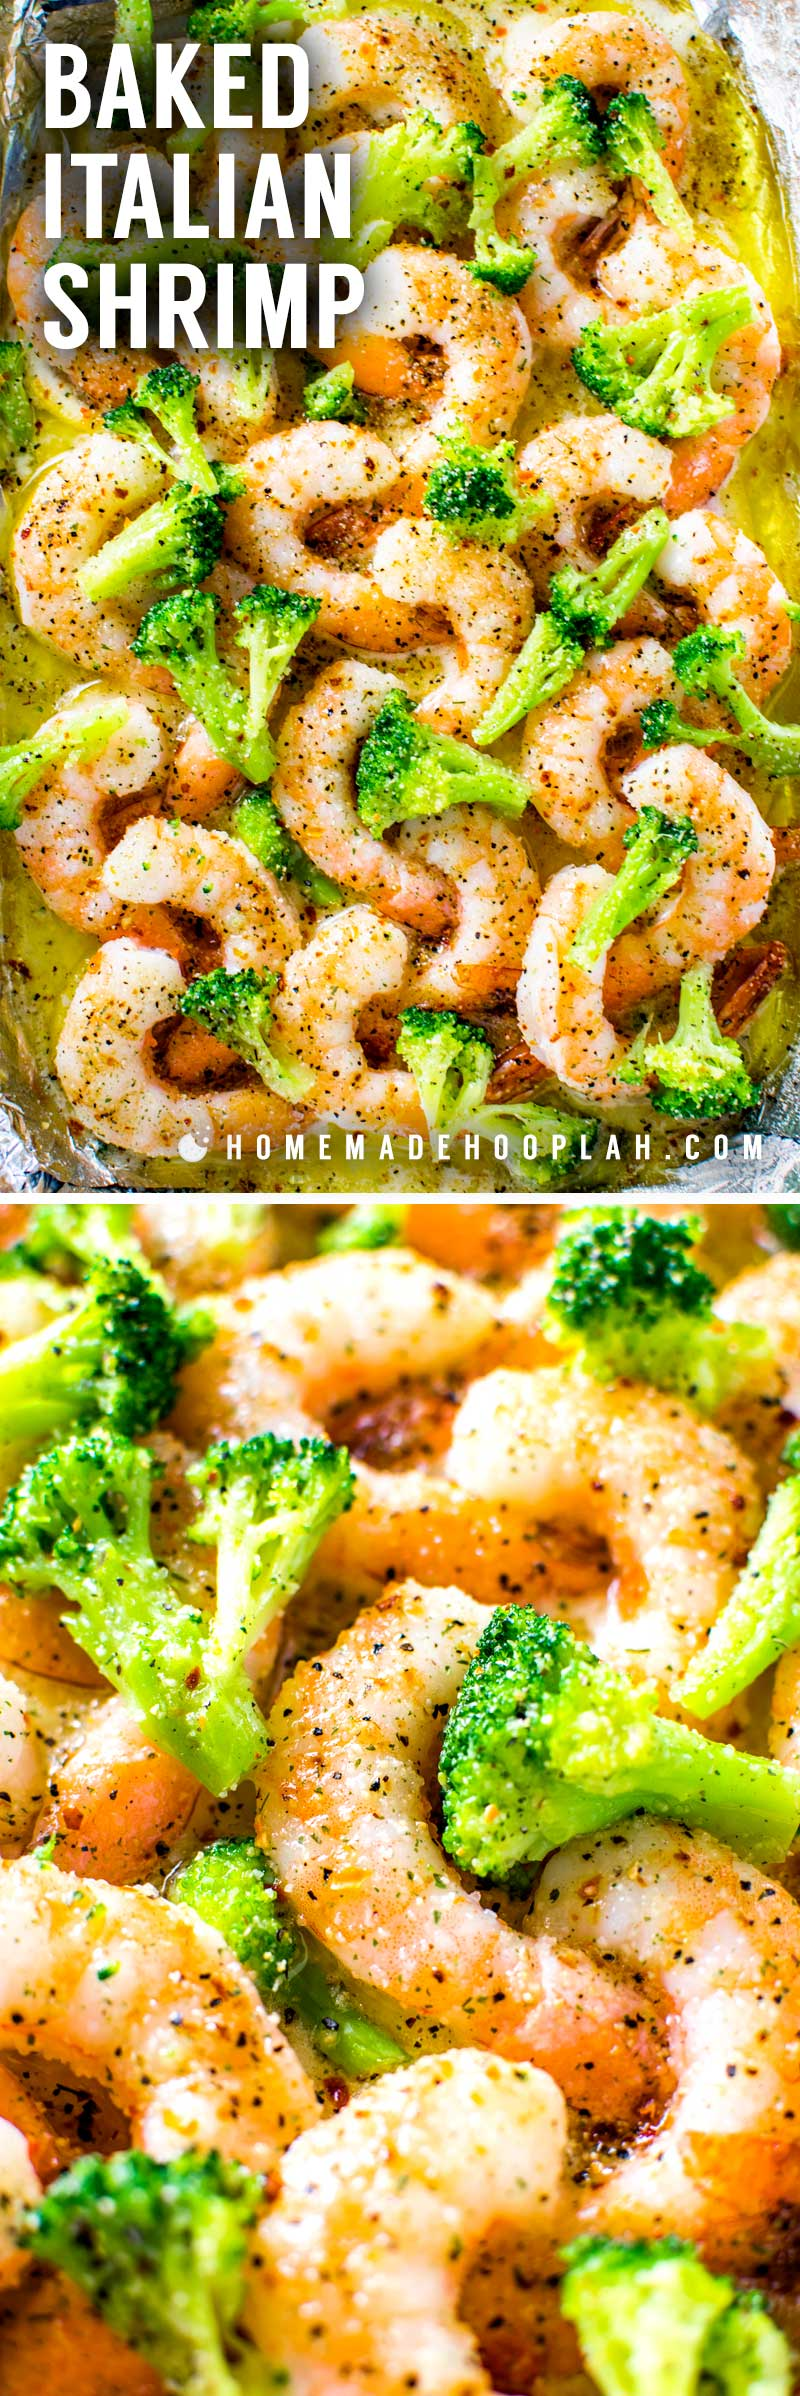 Baked Italian Shrimp! This extremely easy baked Italian shrimp dish is a perfect weeknight dinner for busy seafood lovers. With only four core ingredients, you can have tender shrimp in a buttery Italian sauce in under 20 minutes. Customize it with your favorite vegetables or pasta!   HomemadeHooplah.com